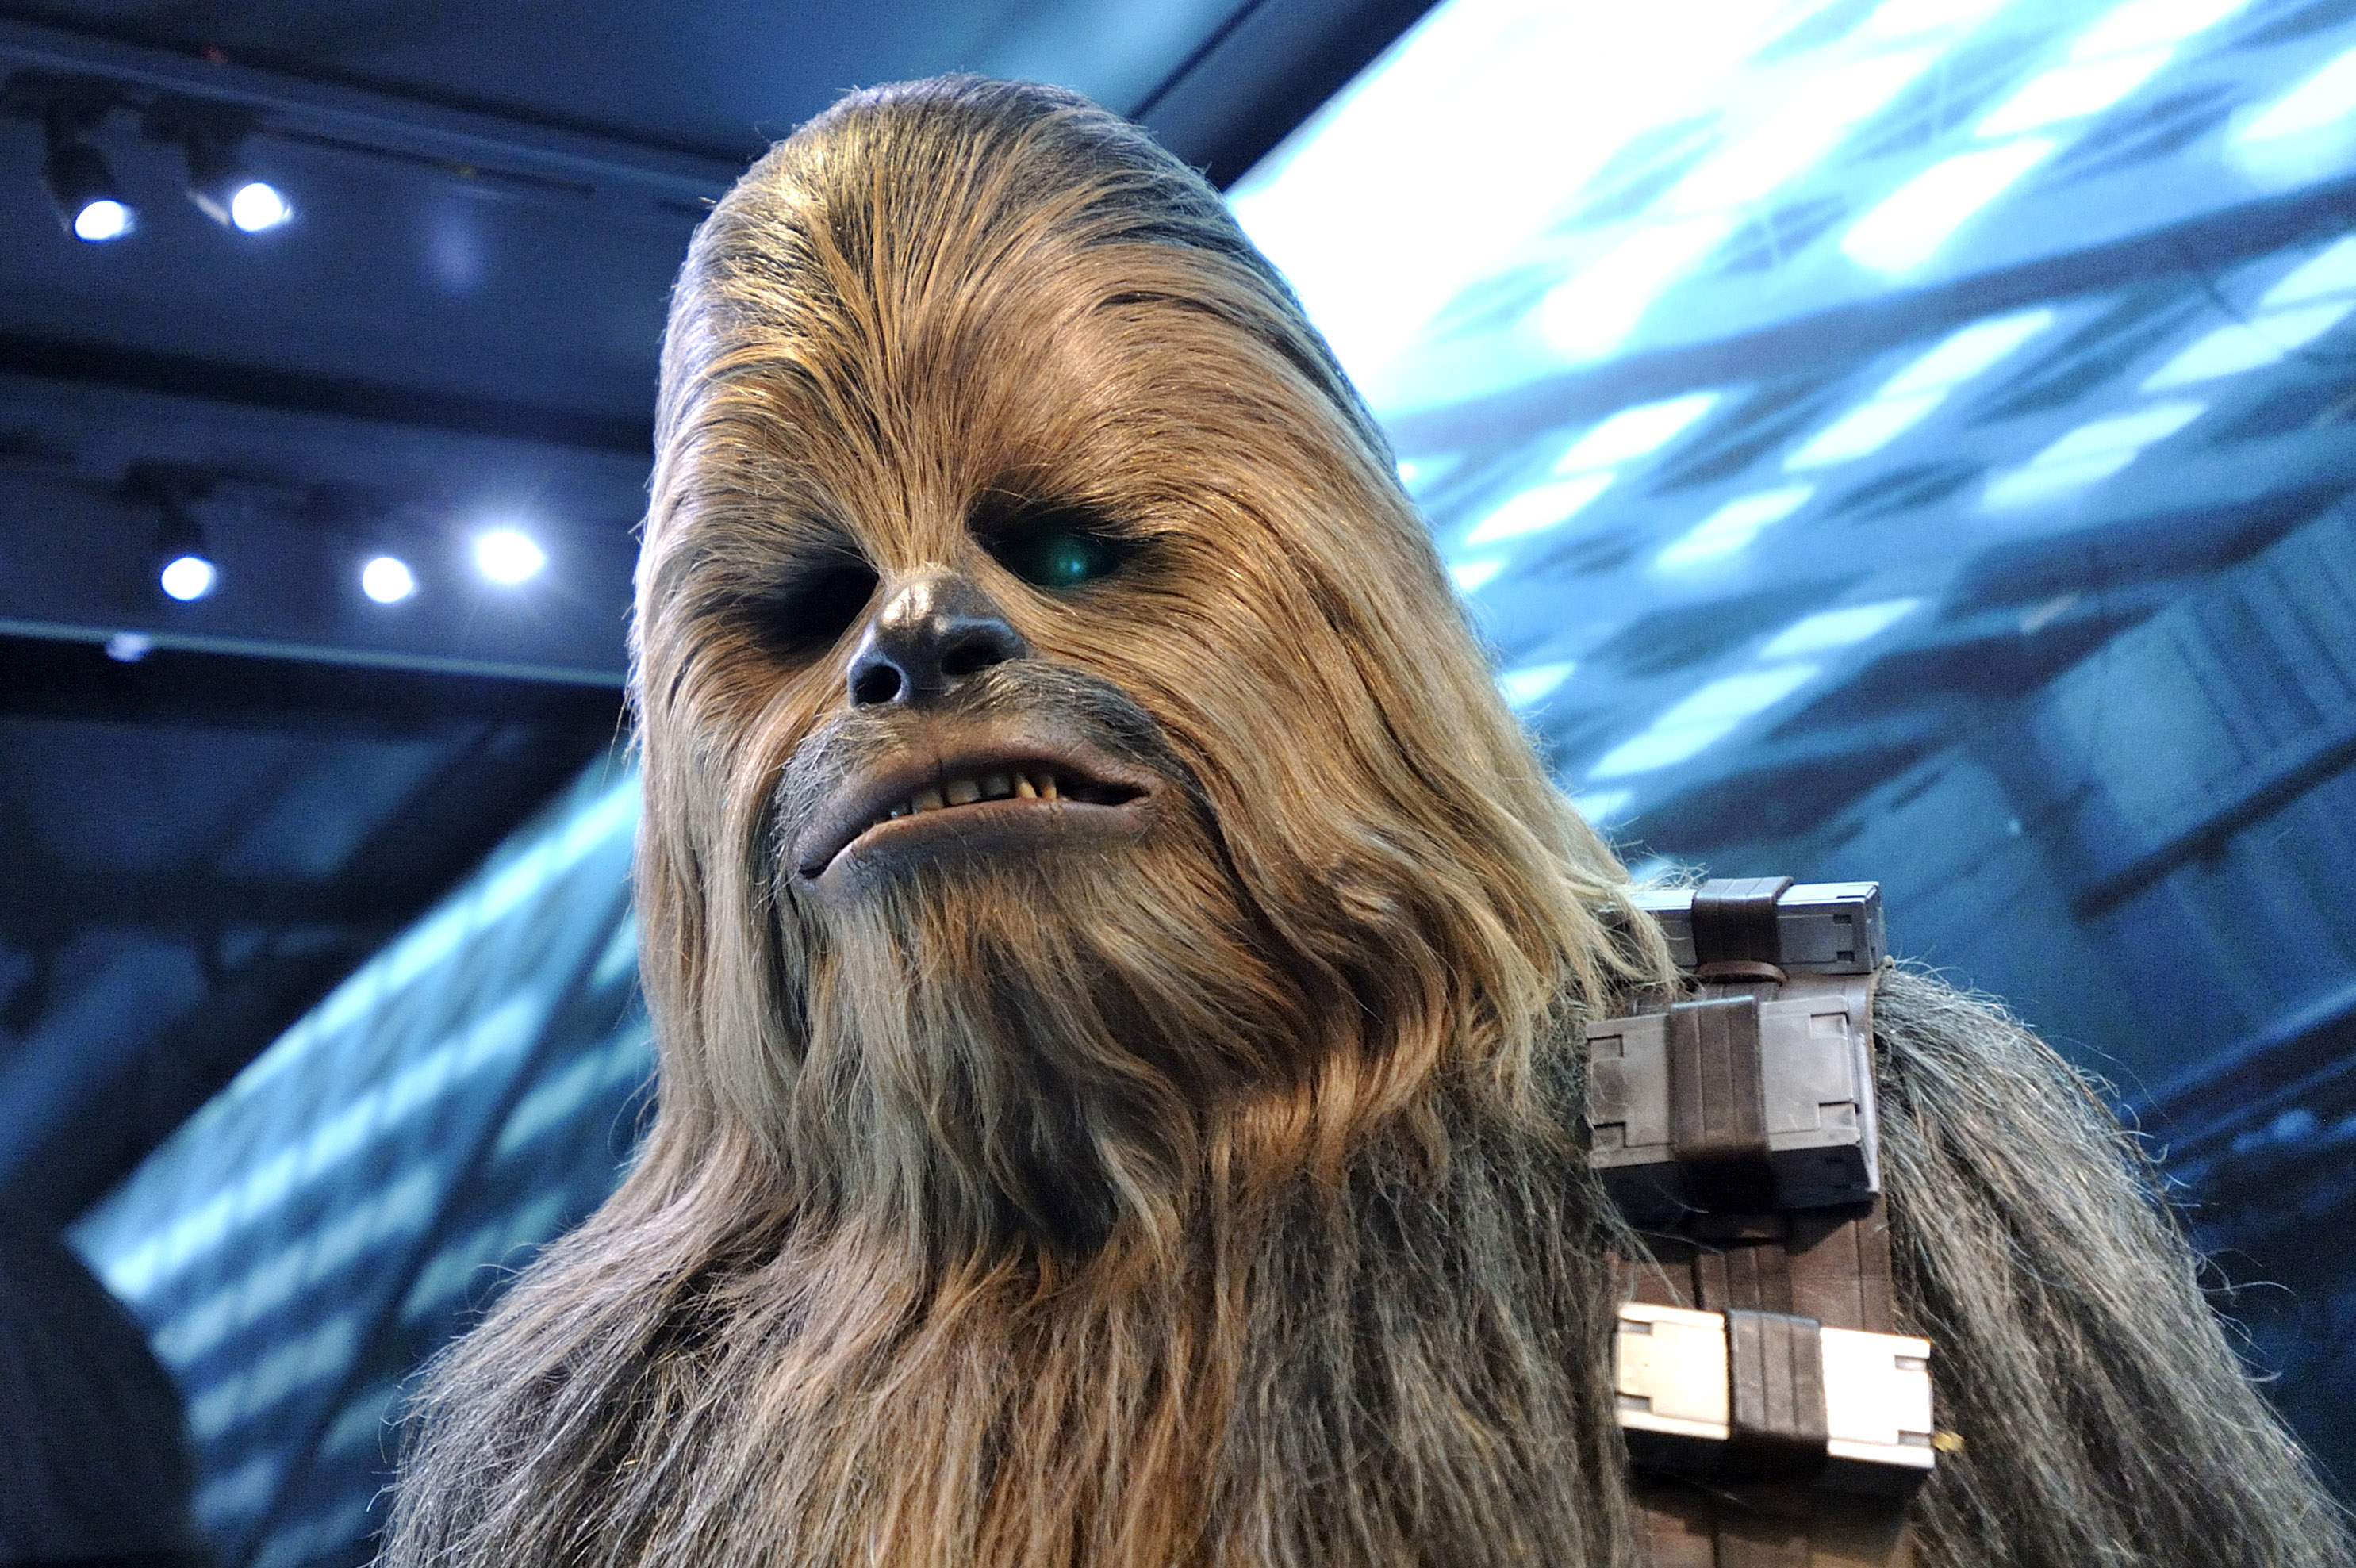 Chewbacca during a Straw Wars press event.